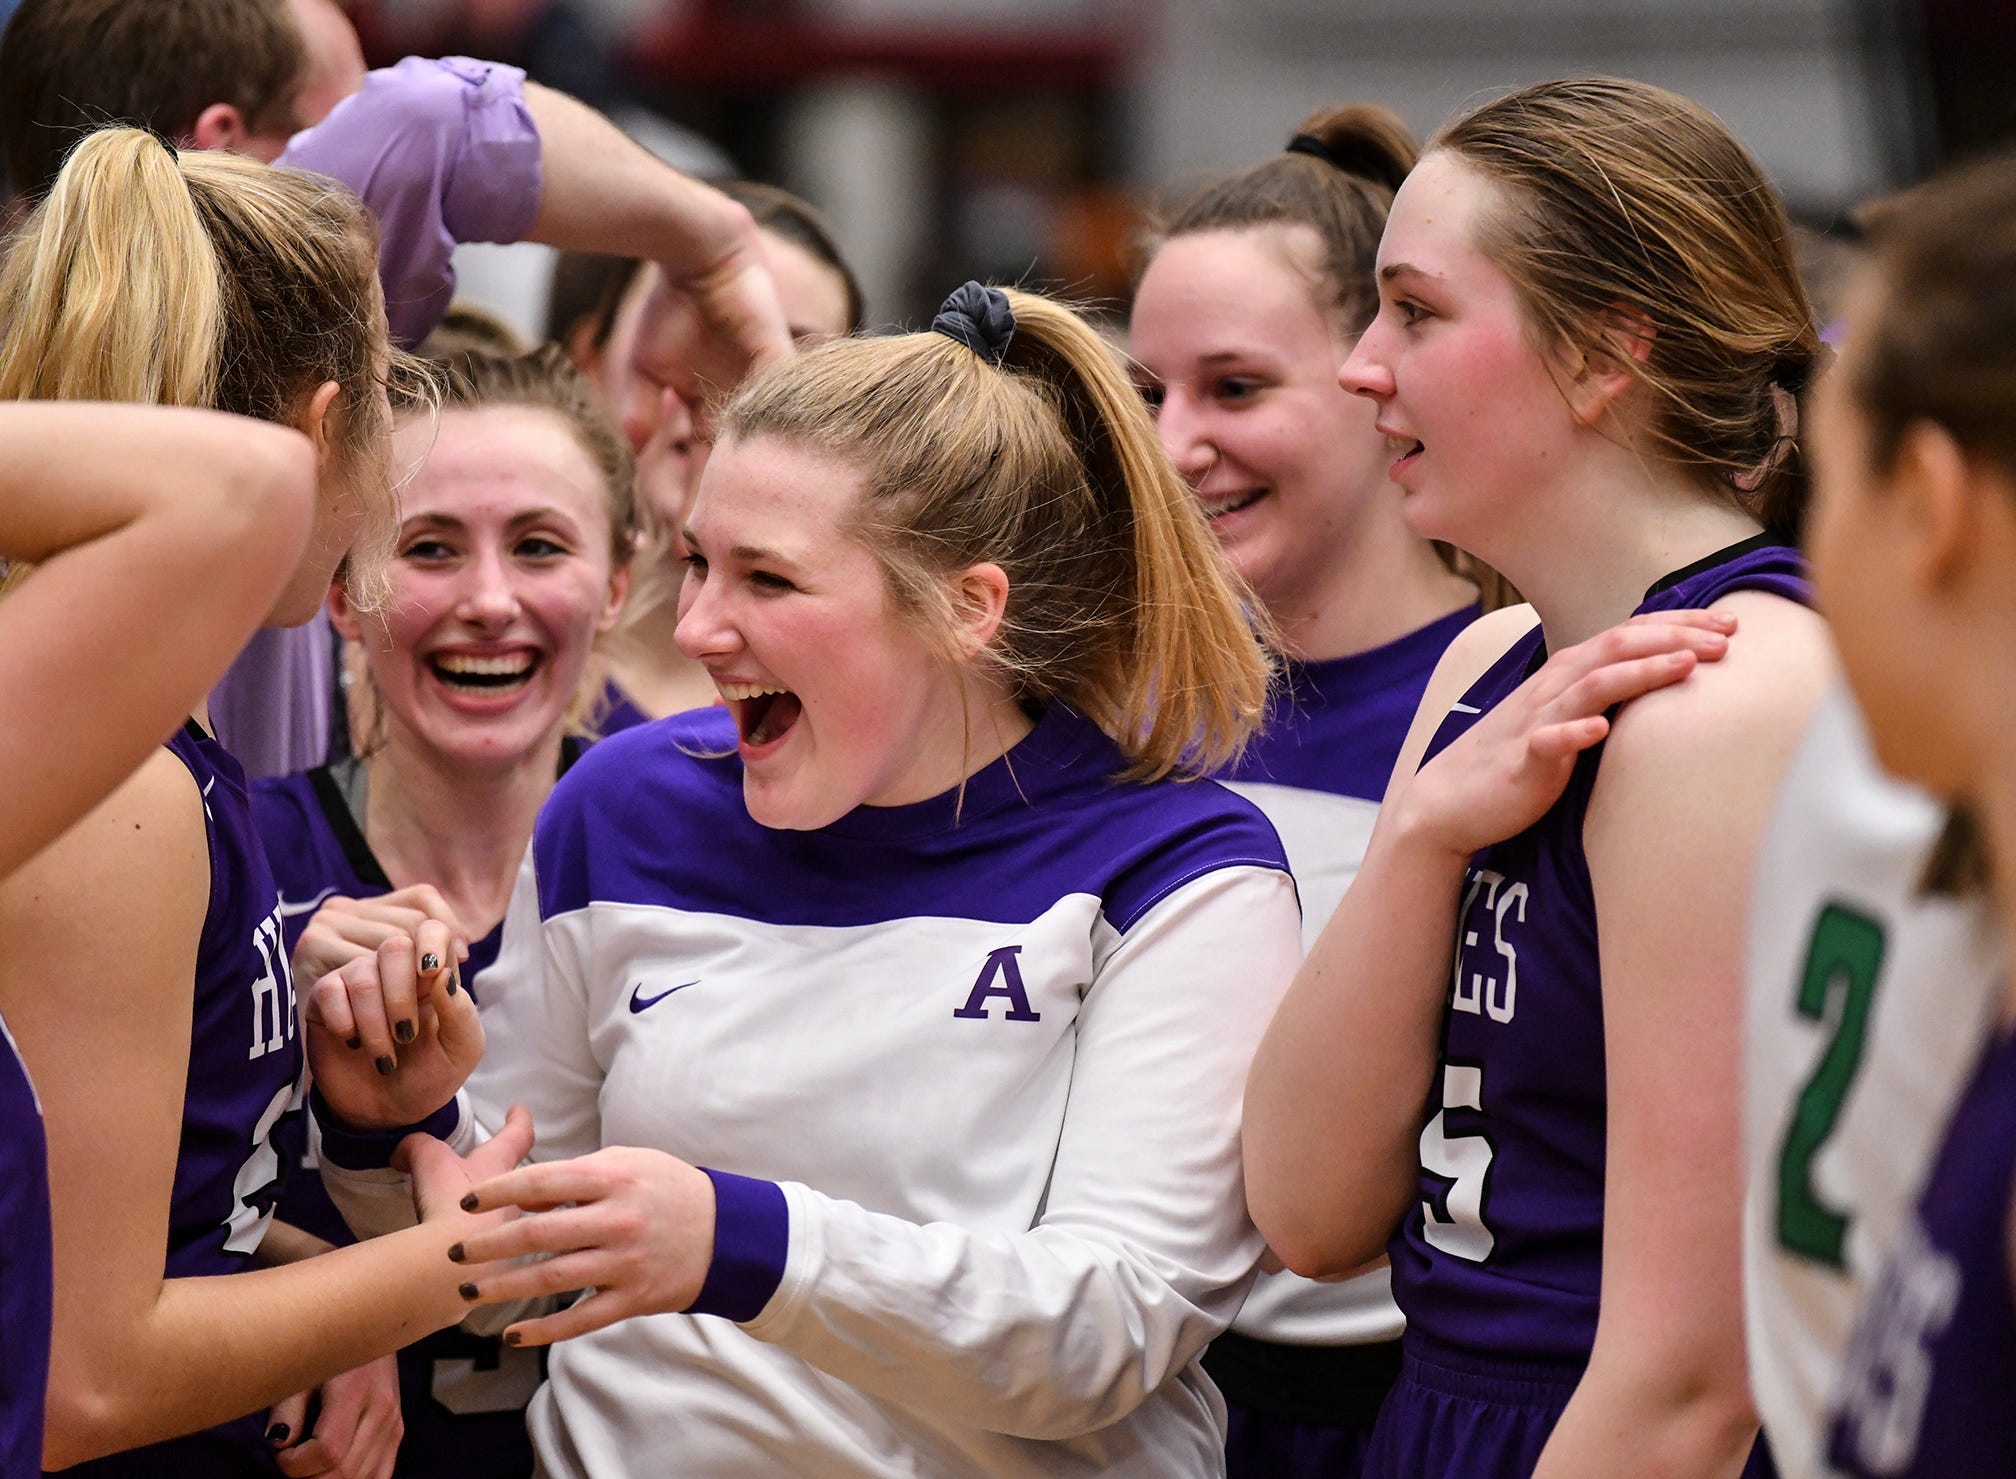 Albany players react following the Section 6-2A championship game against Pine City Friday, March 8, at Halenbeck Hall in St. Cloud. Albany won 60-29.